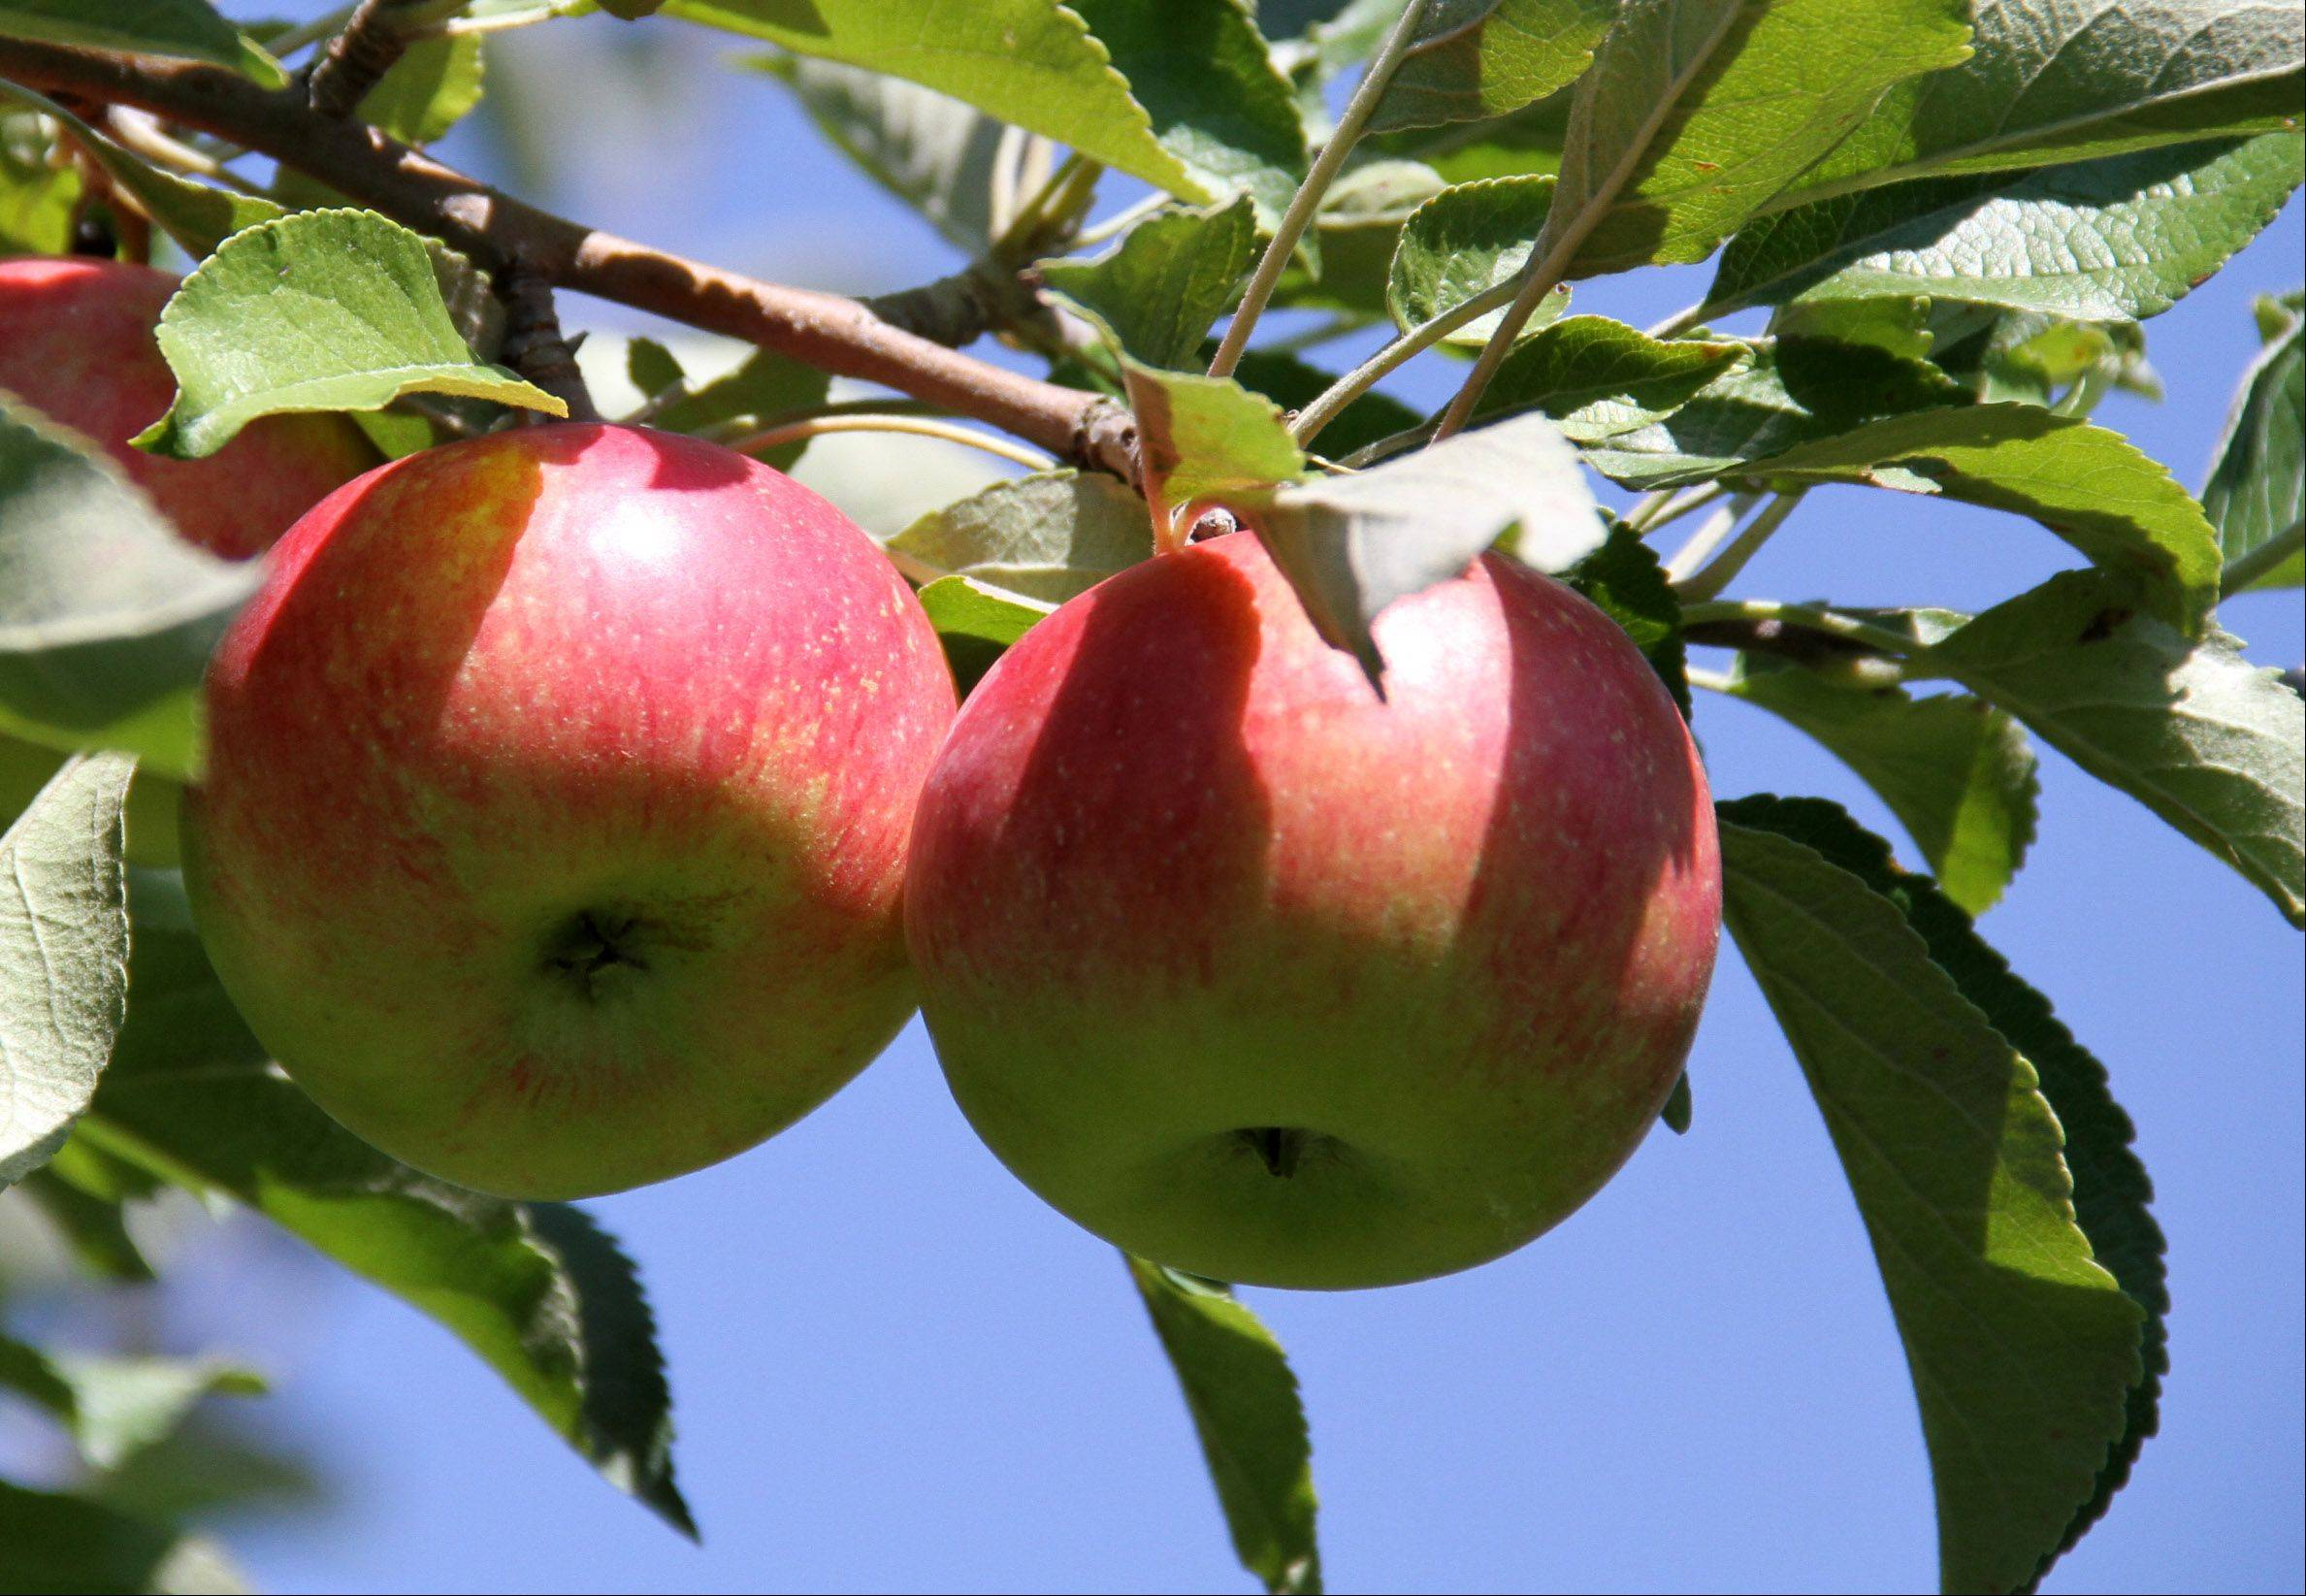 This year area orchards are filled with a variety of apples waiting to be picked.